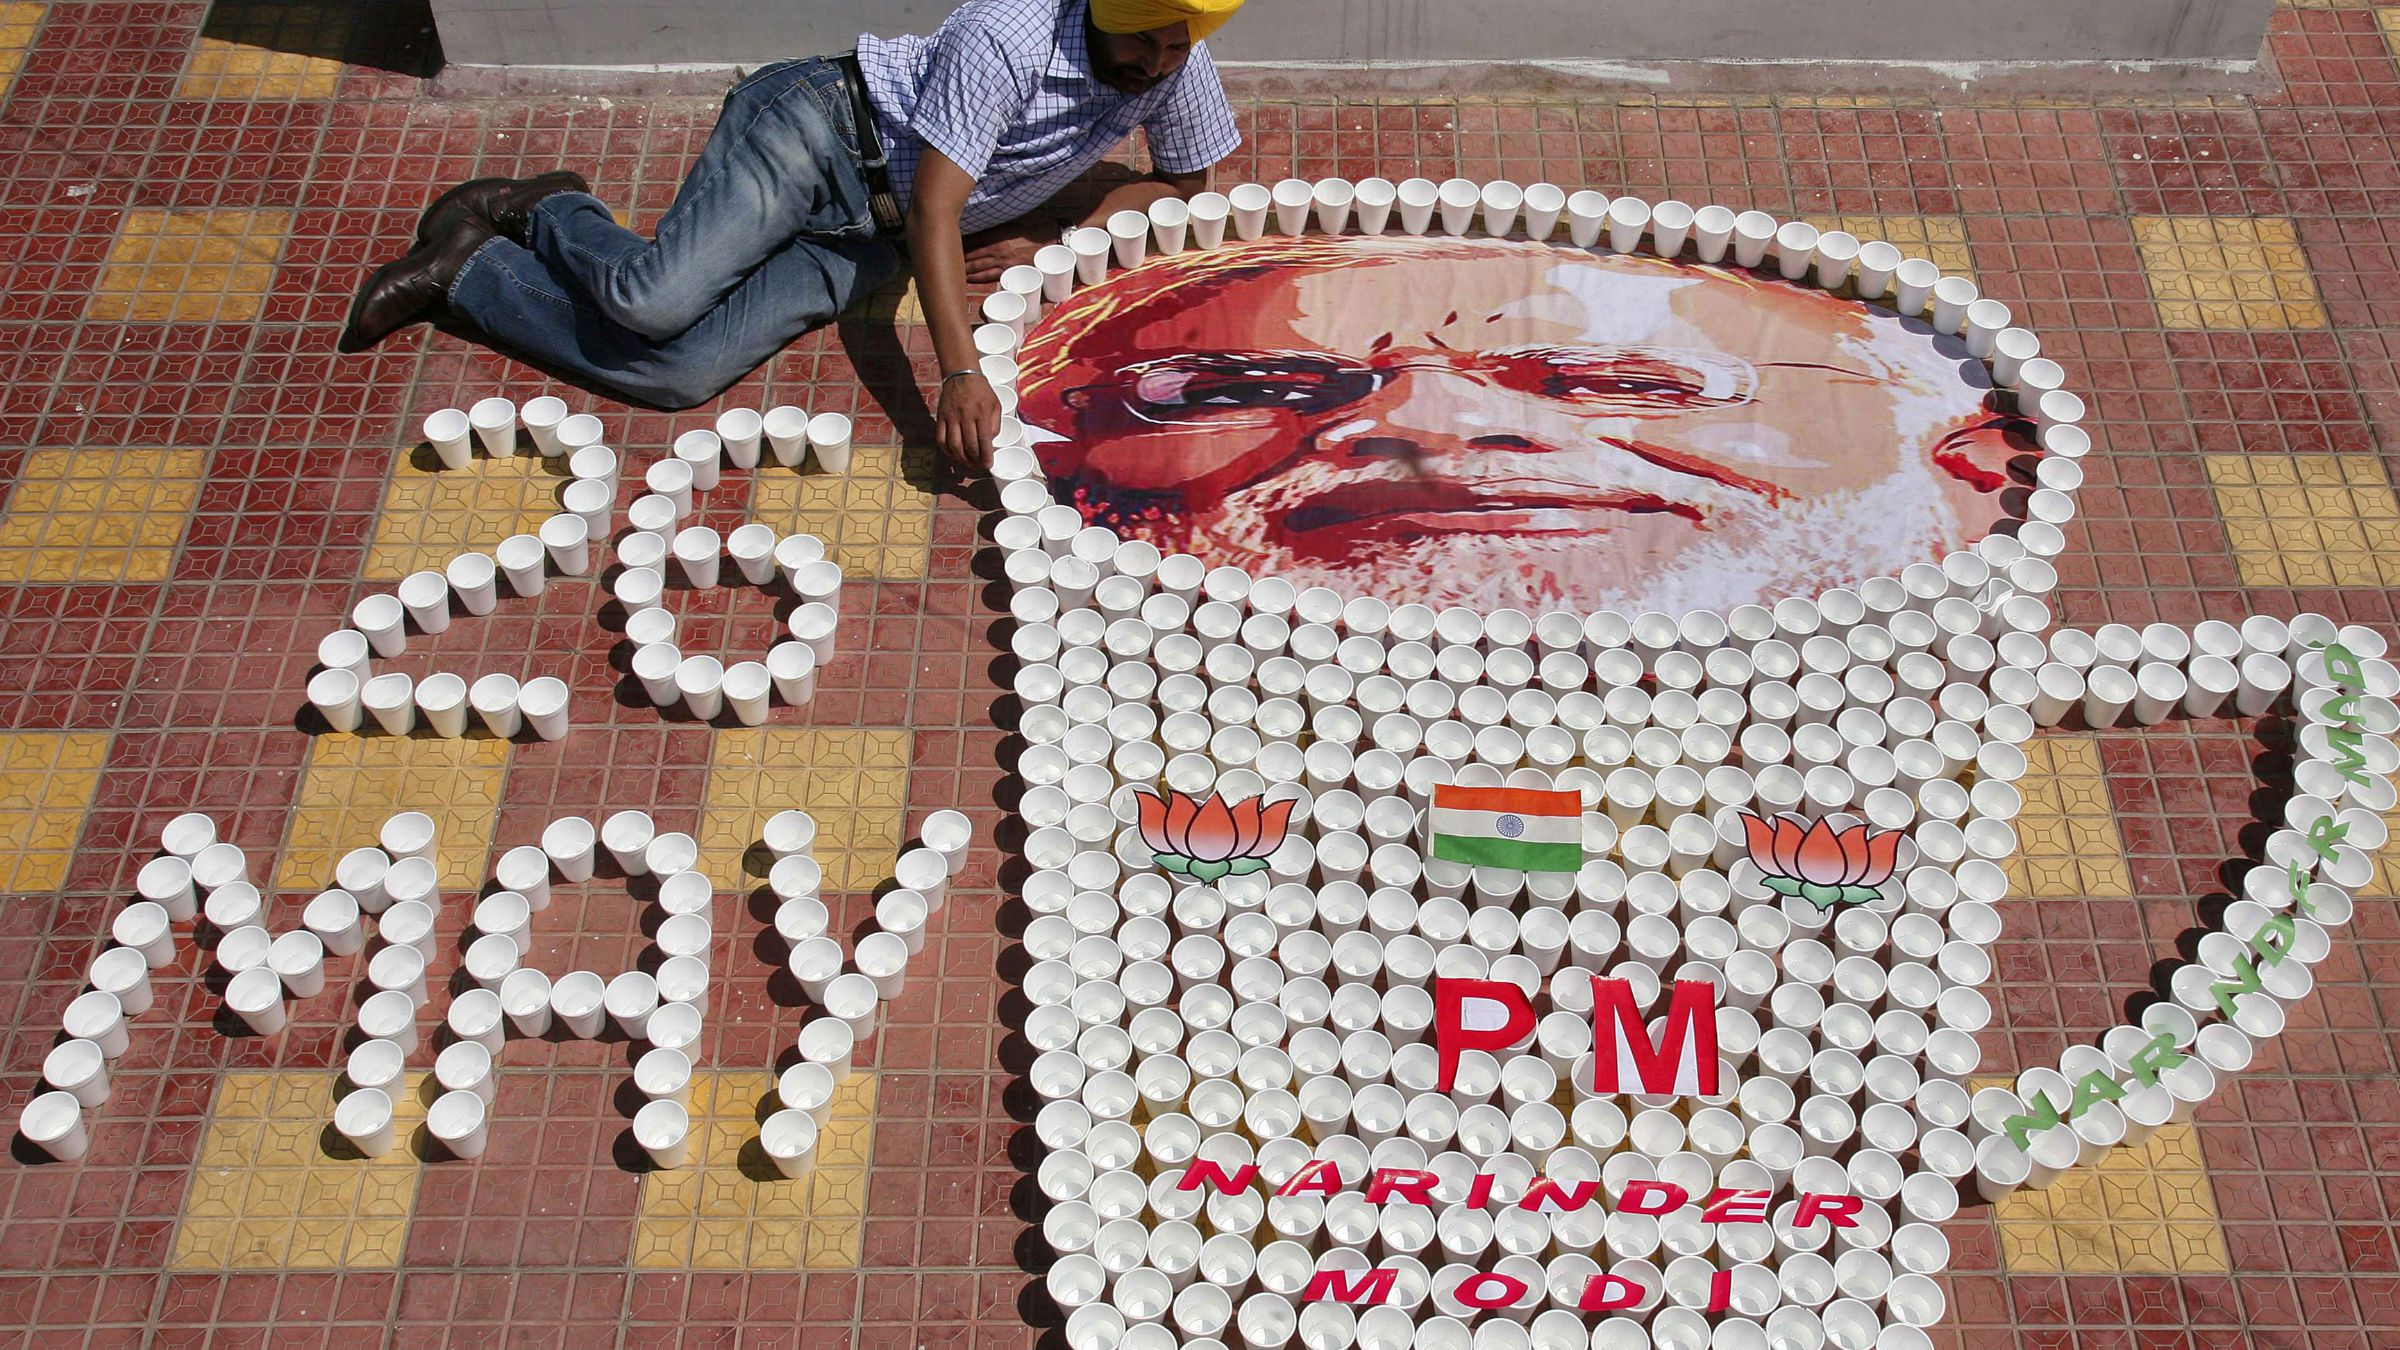 DATE IMPORTED:May 24, 2014Indian artist Harwinder Singh Gill poses with his new creation, an image of Indian Prime Minister-designate Narendra Modi and tea cups ahead of Modi's swearing-in ceremony on Monday, in the northern Indian city of Amritsar May 24, 2014.